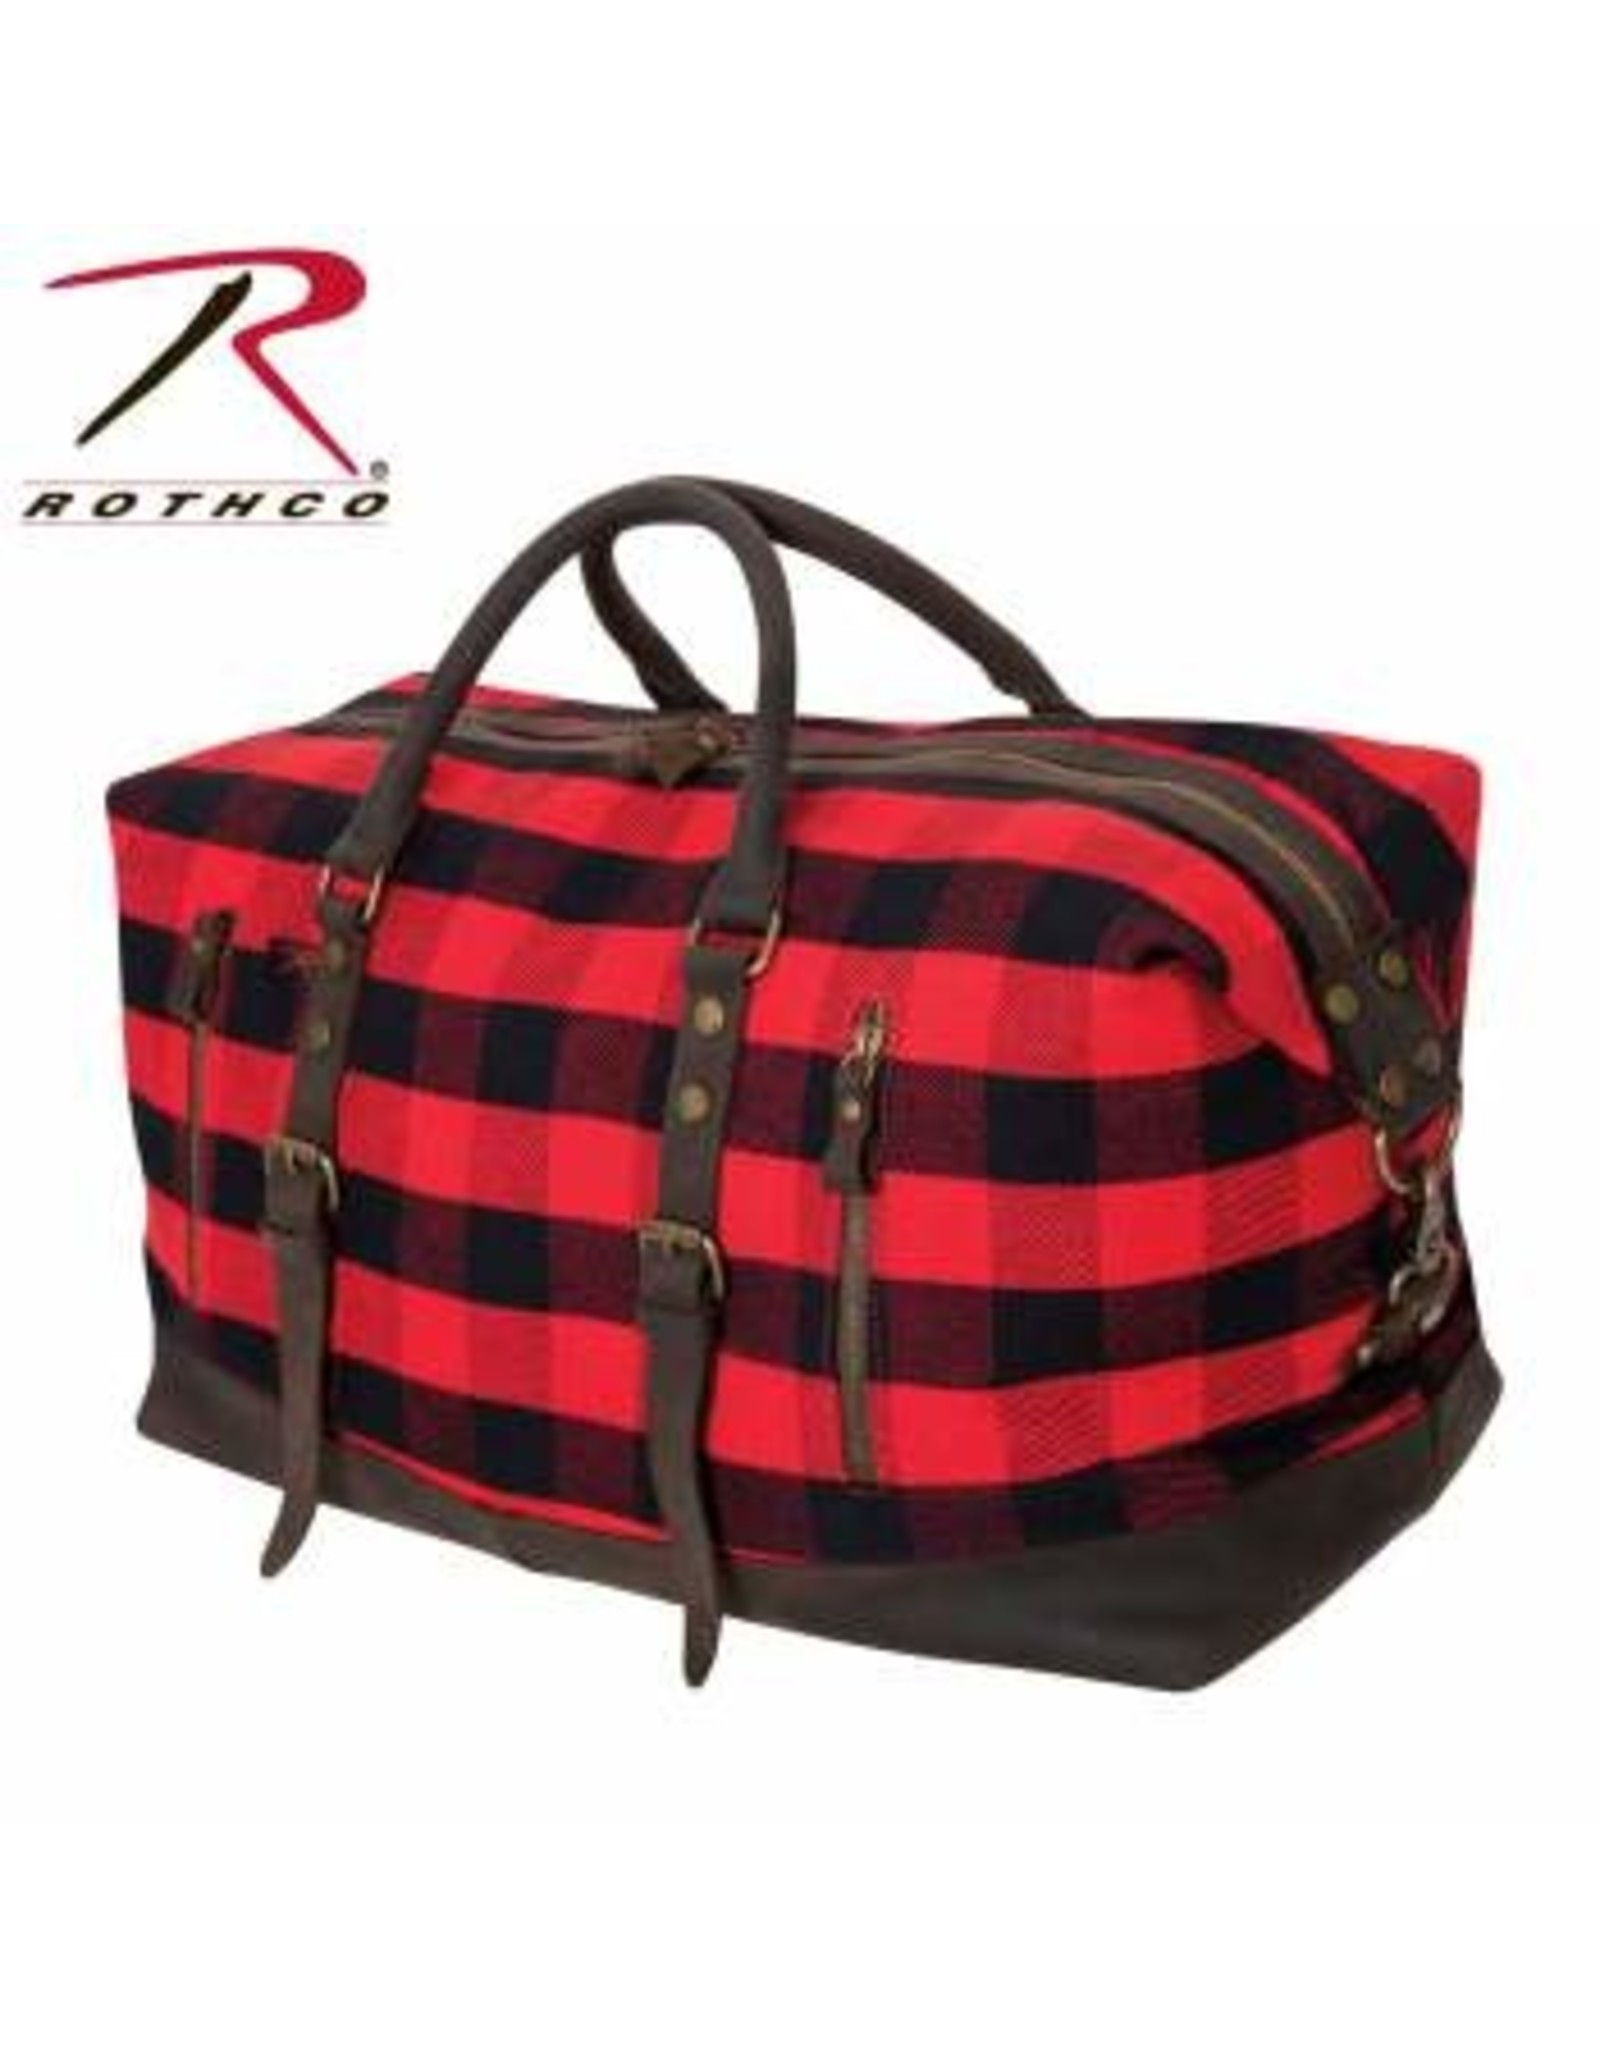 ROTHCO CANVAS OVERSIZED TRAVEL BAG